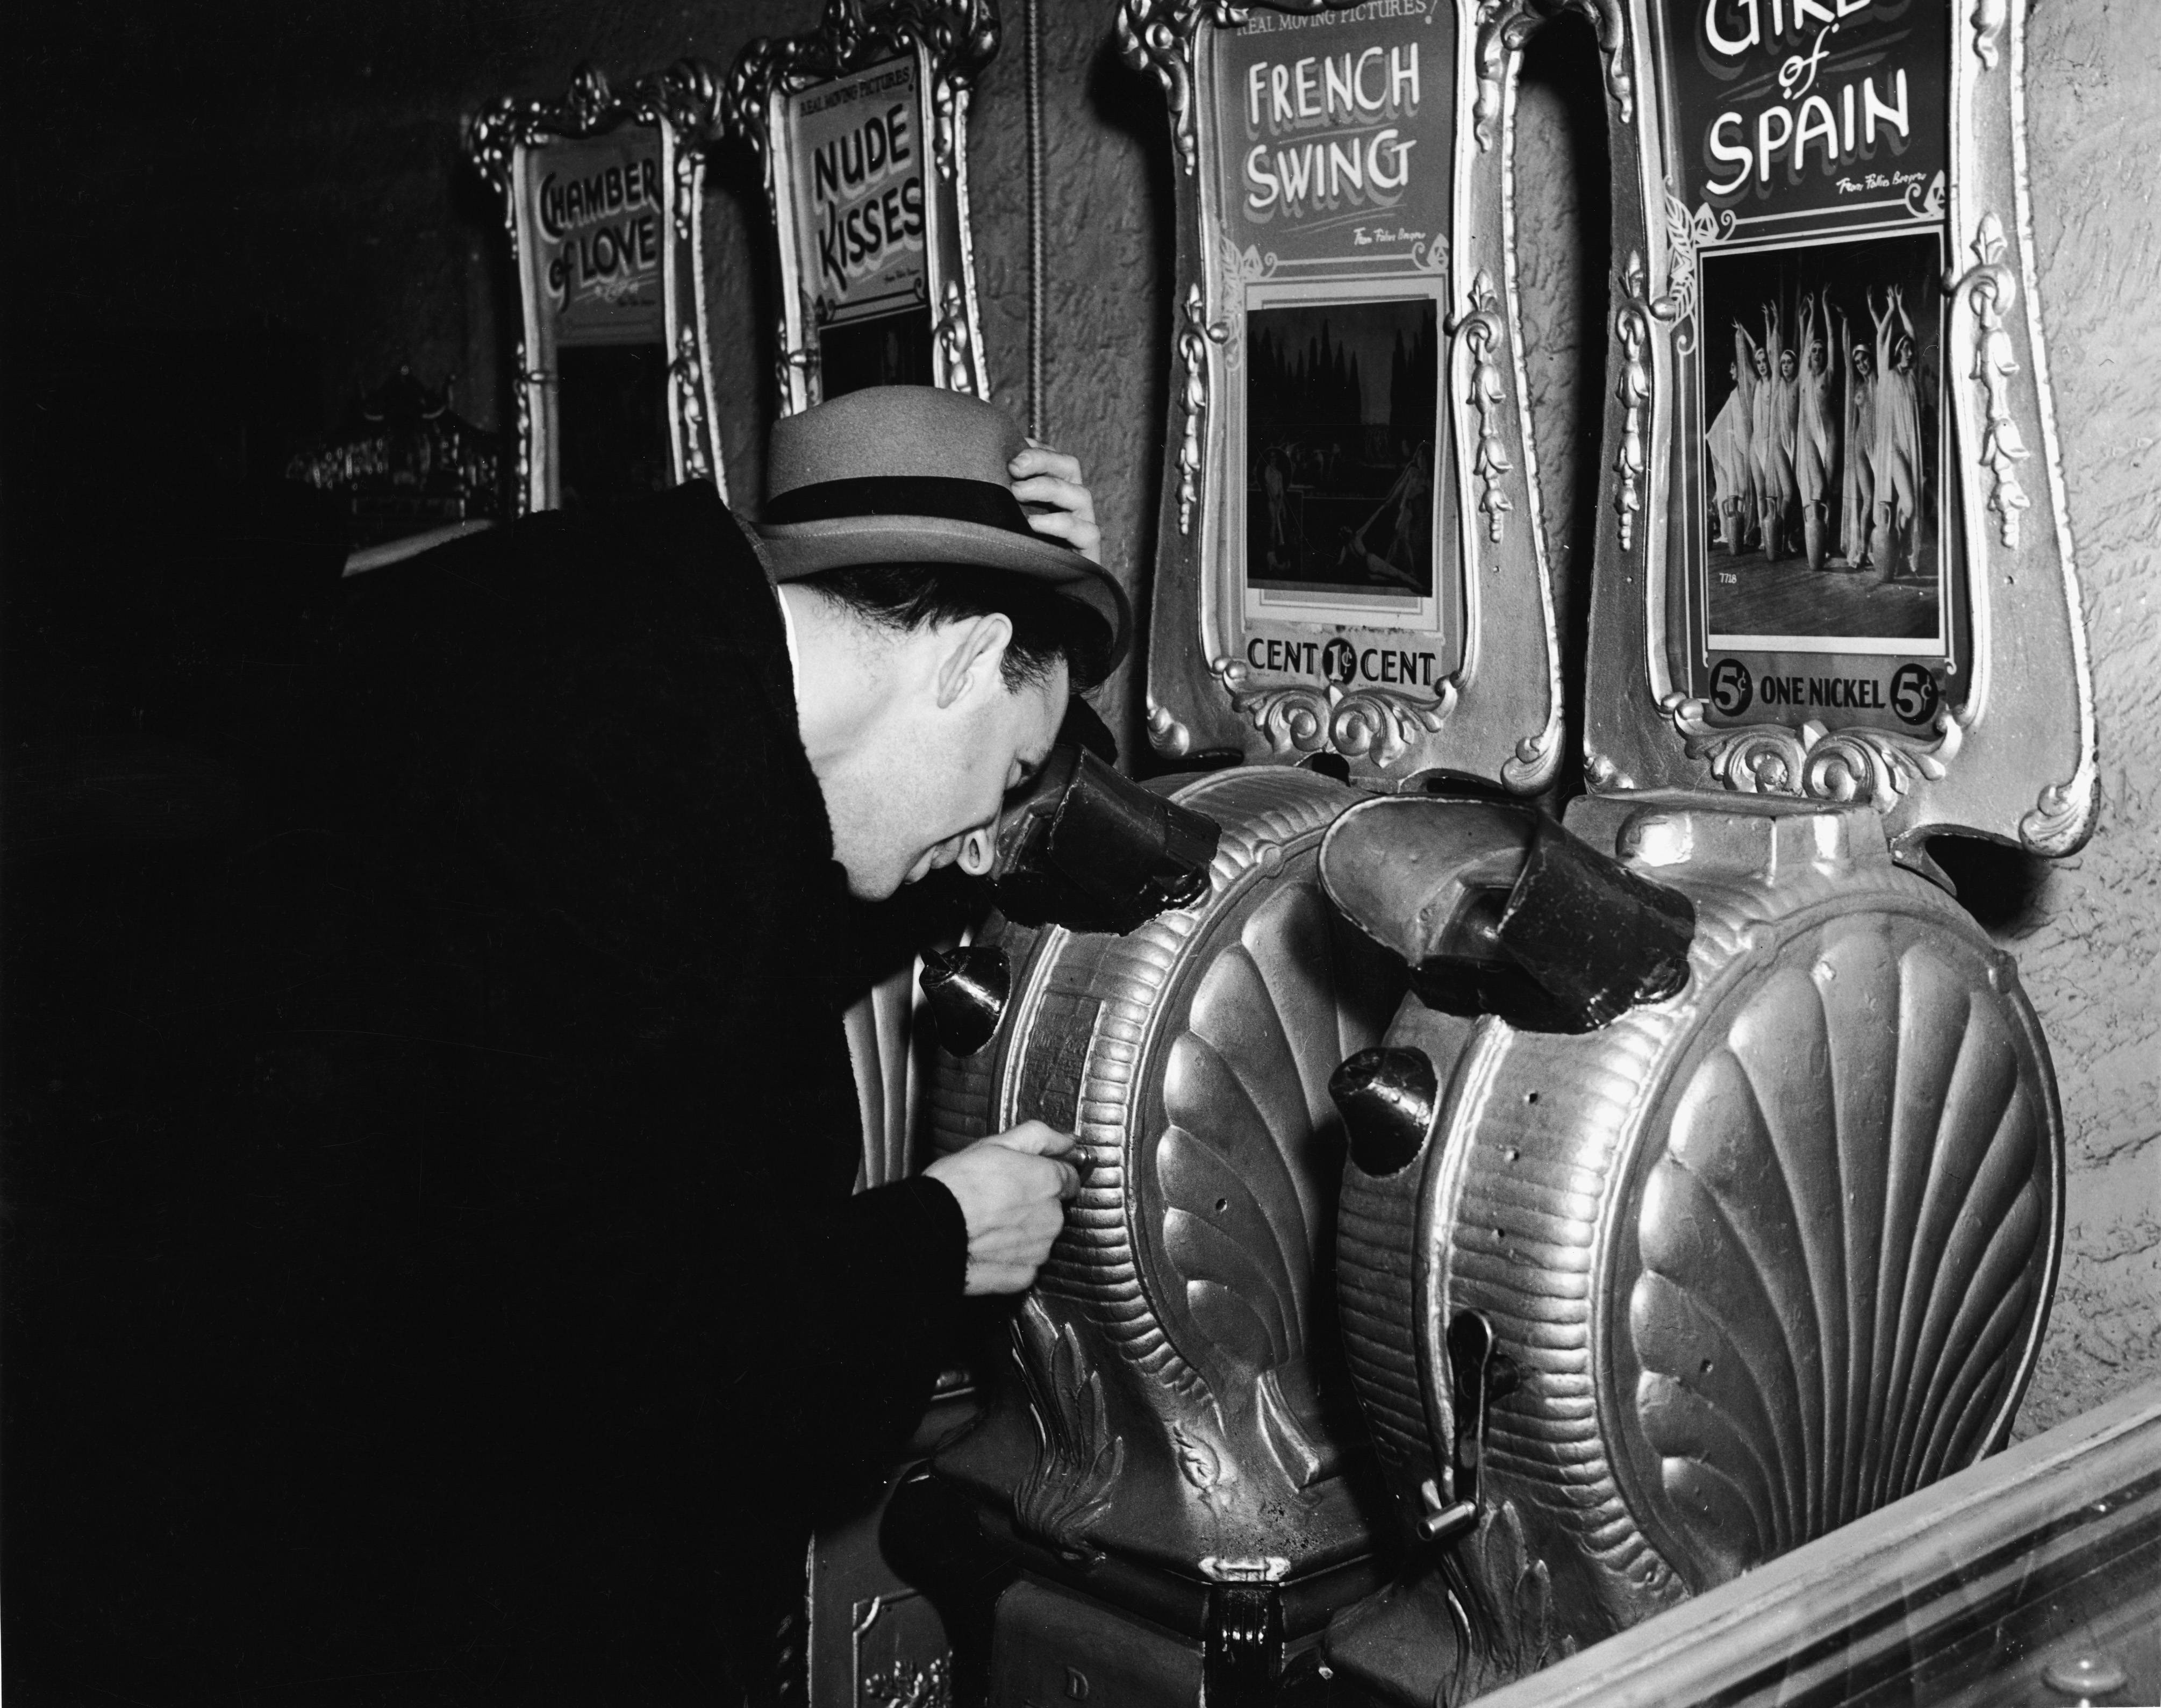 1940s-erotic-peep-show-machines